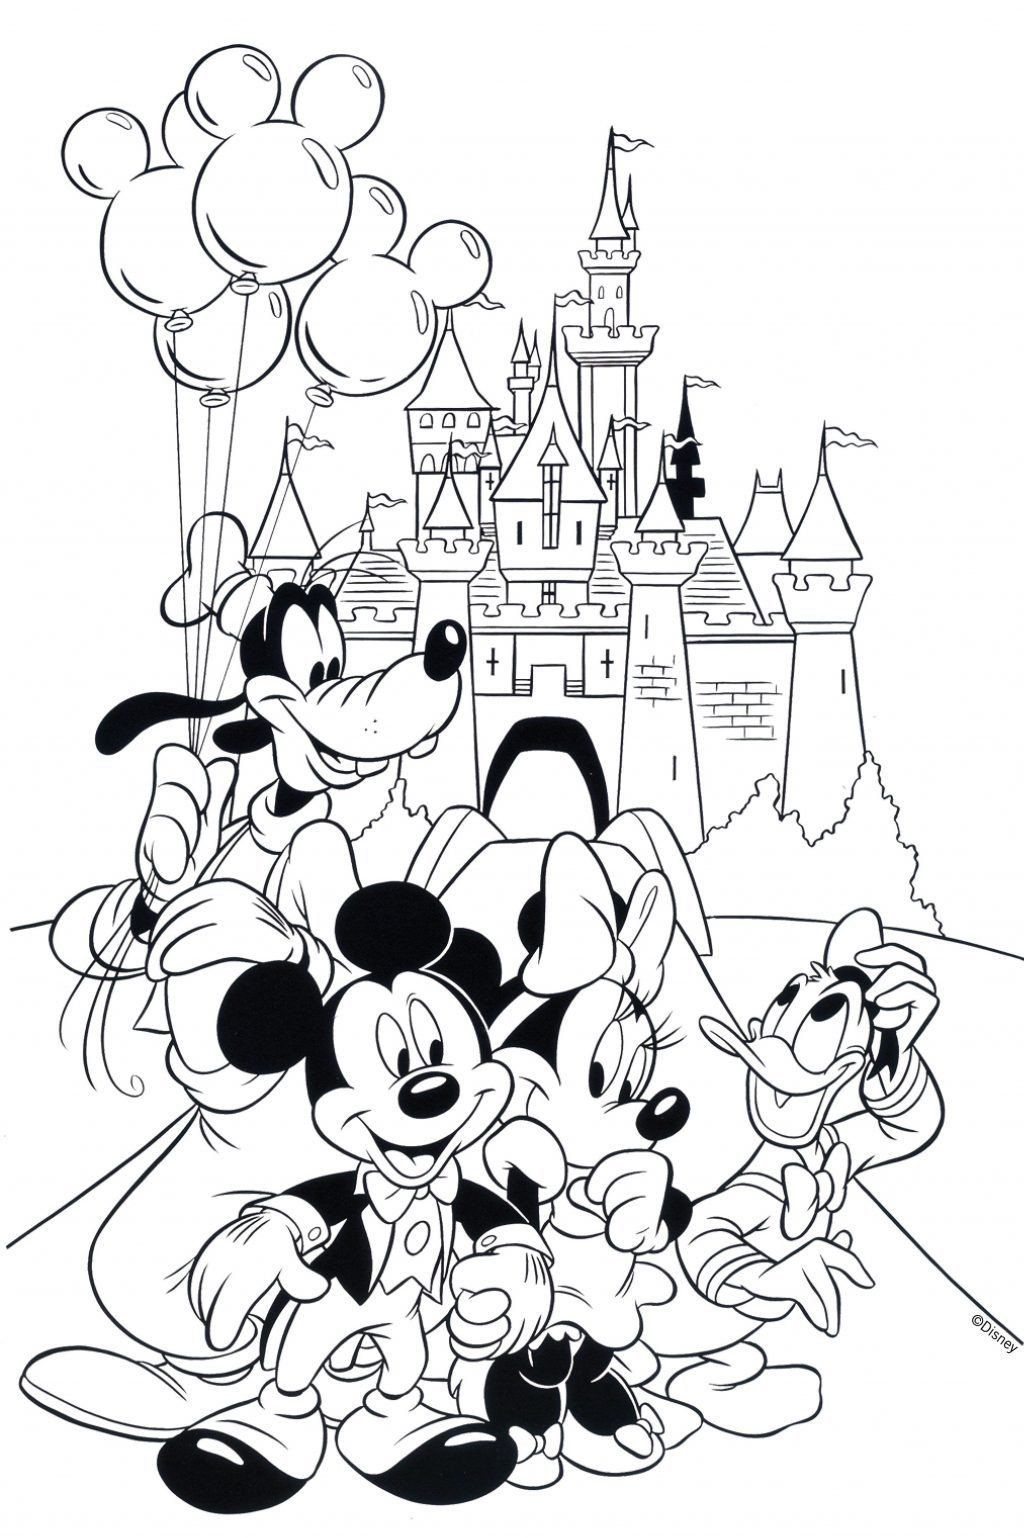 Disney Coloring Pages Pdf Luxury Coloring Pages Coloring Pages Pdf Disney Free Frozen Disney Coloring Pages Cartoon Coloring Pages Mickey Mouse Coloring Pages